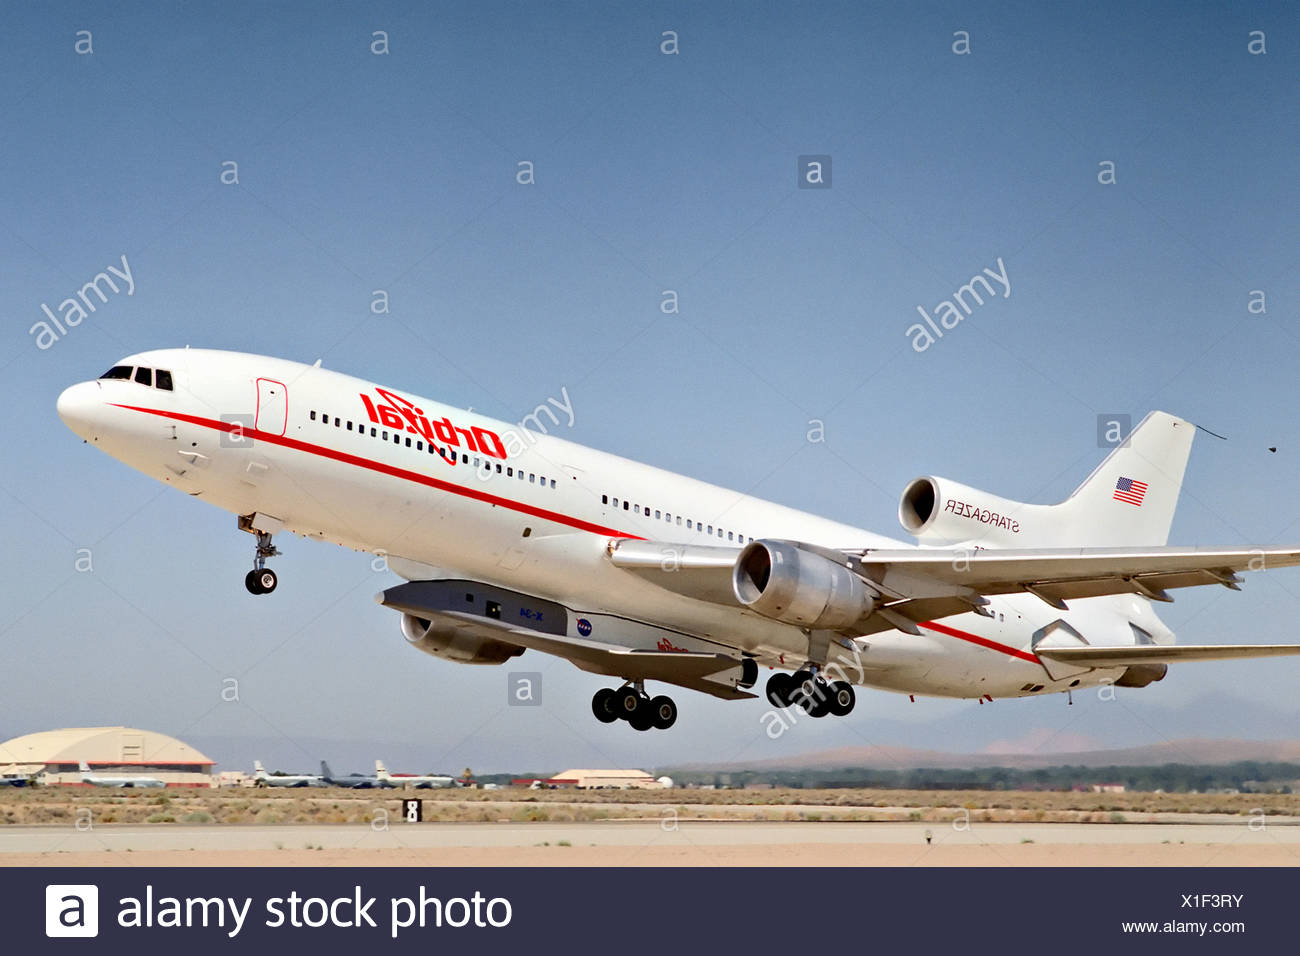 X-34 Attached to L-1011 - Stock Image